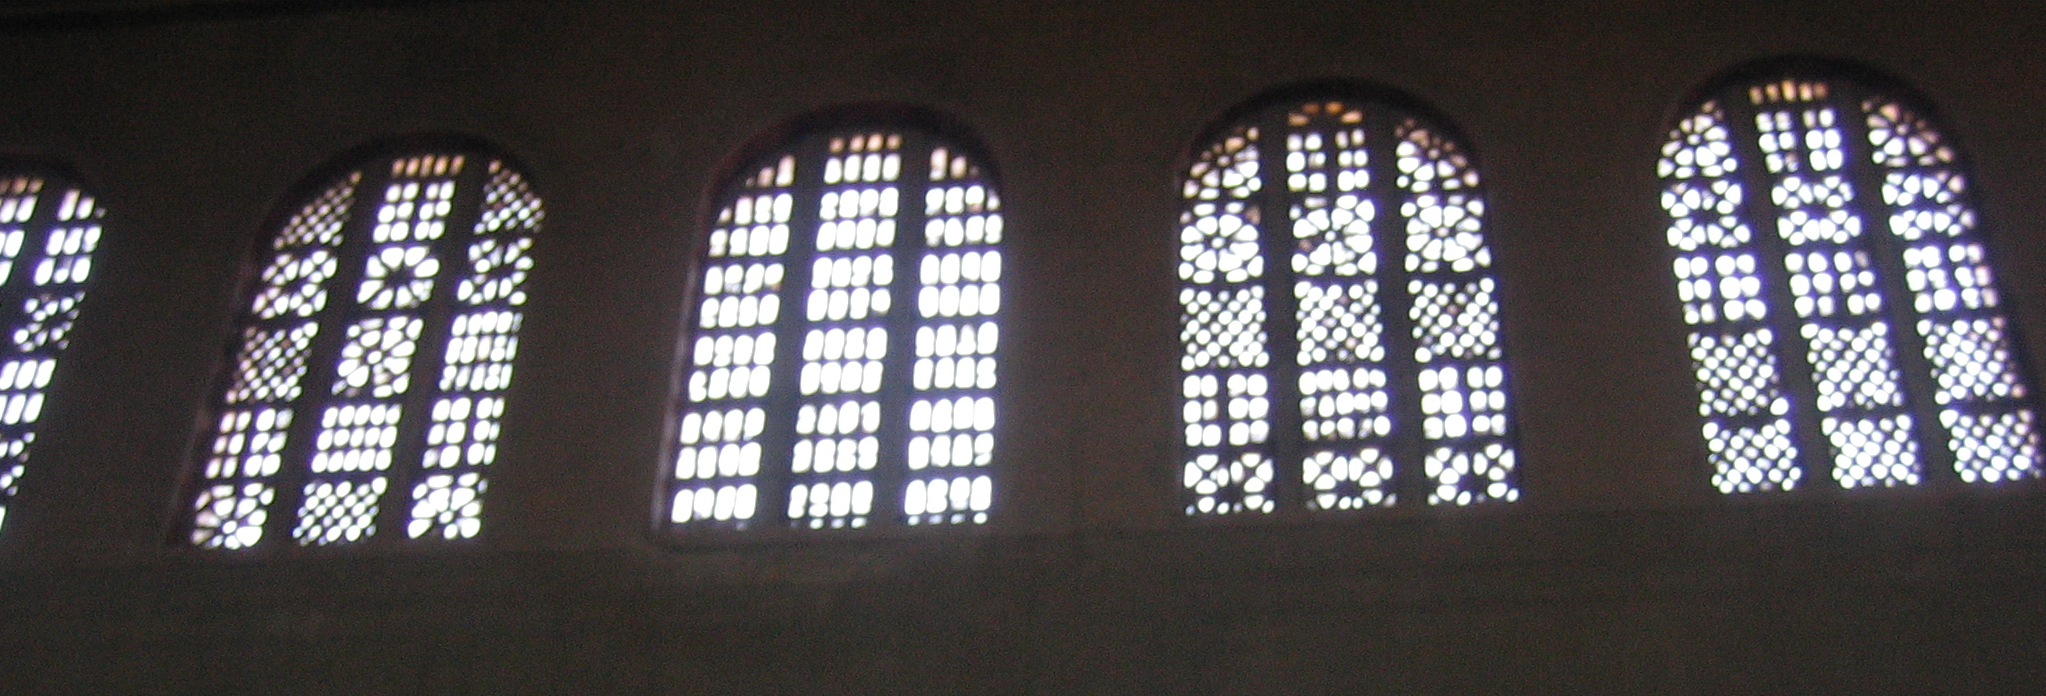 File sabina wikimedia commons for Fenster wiki